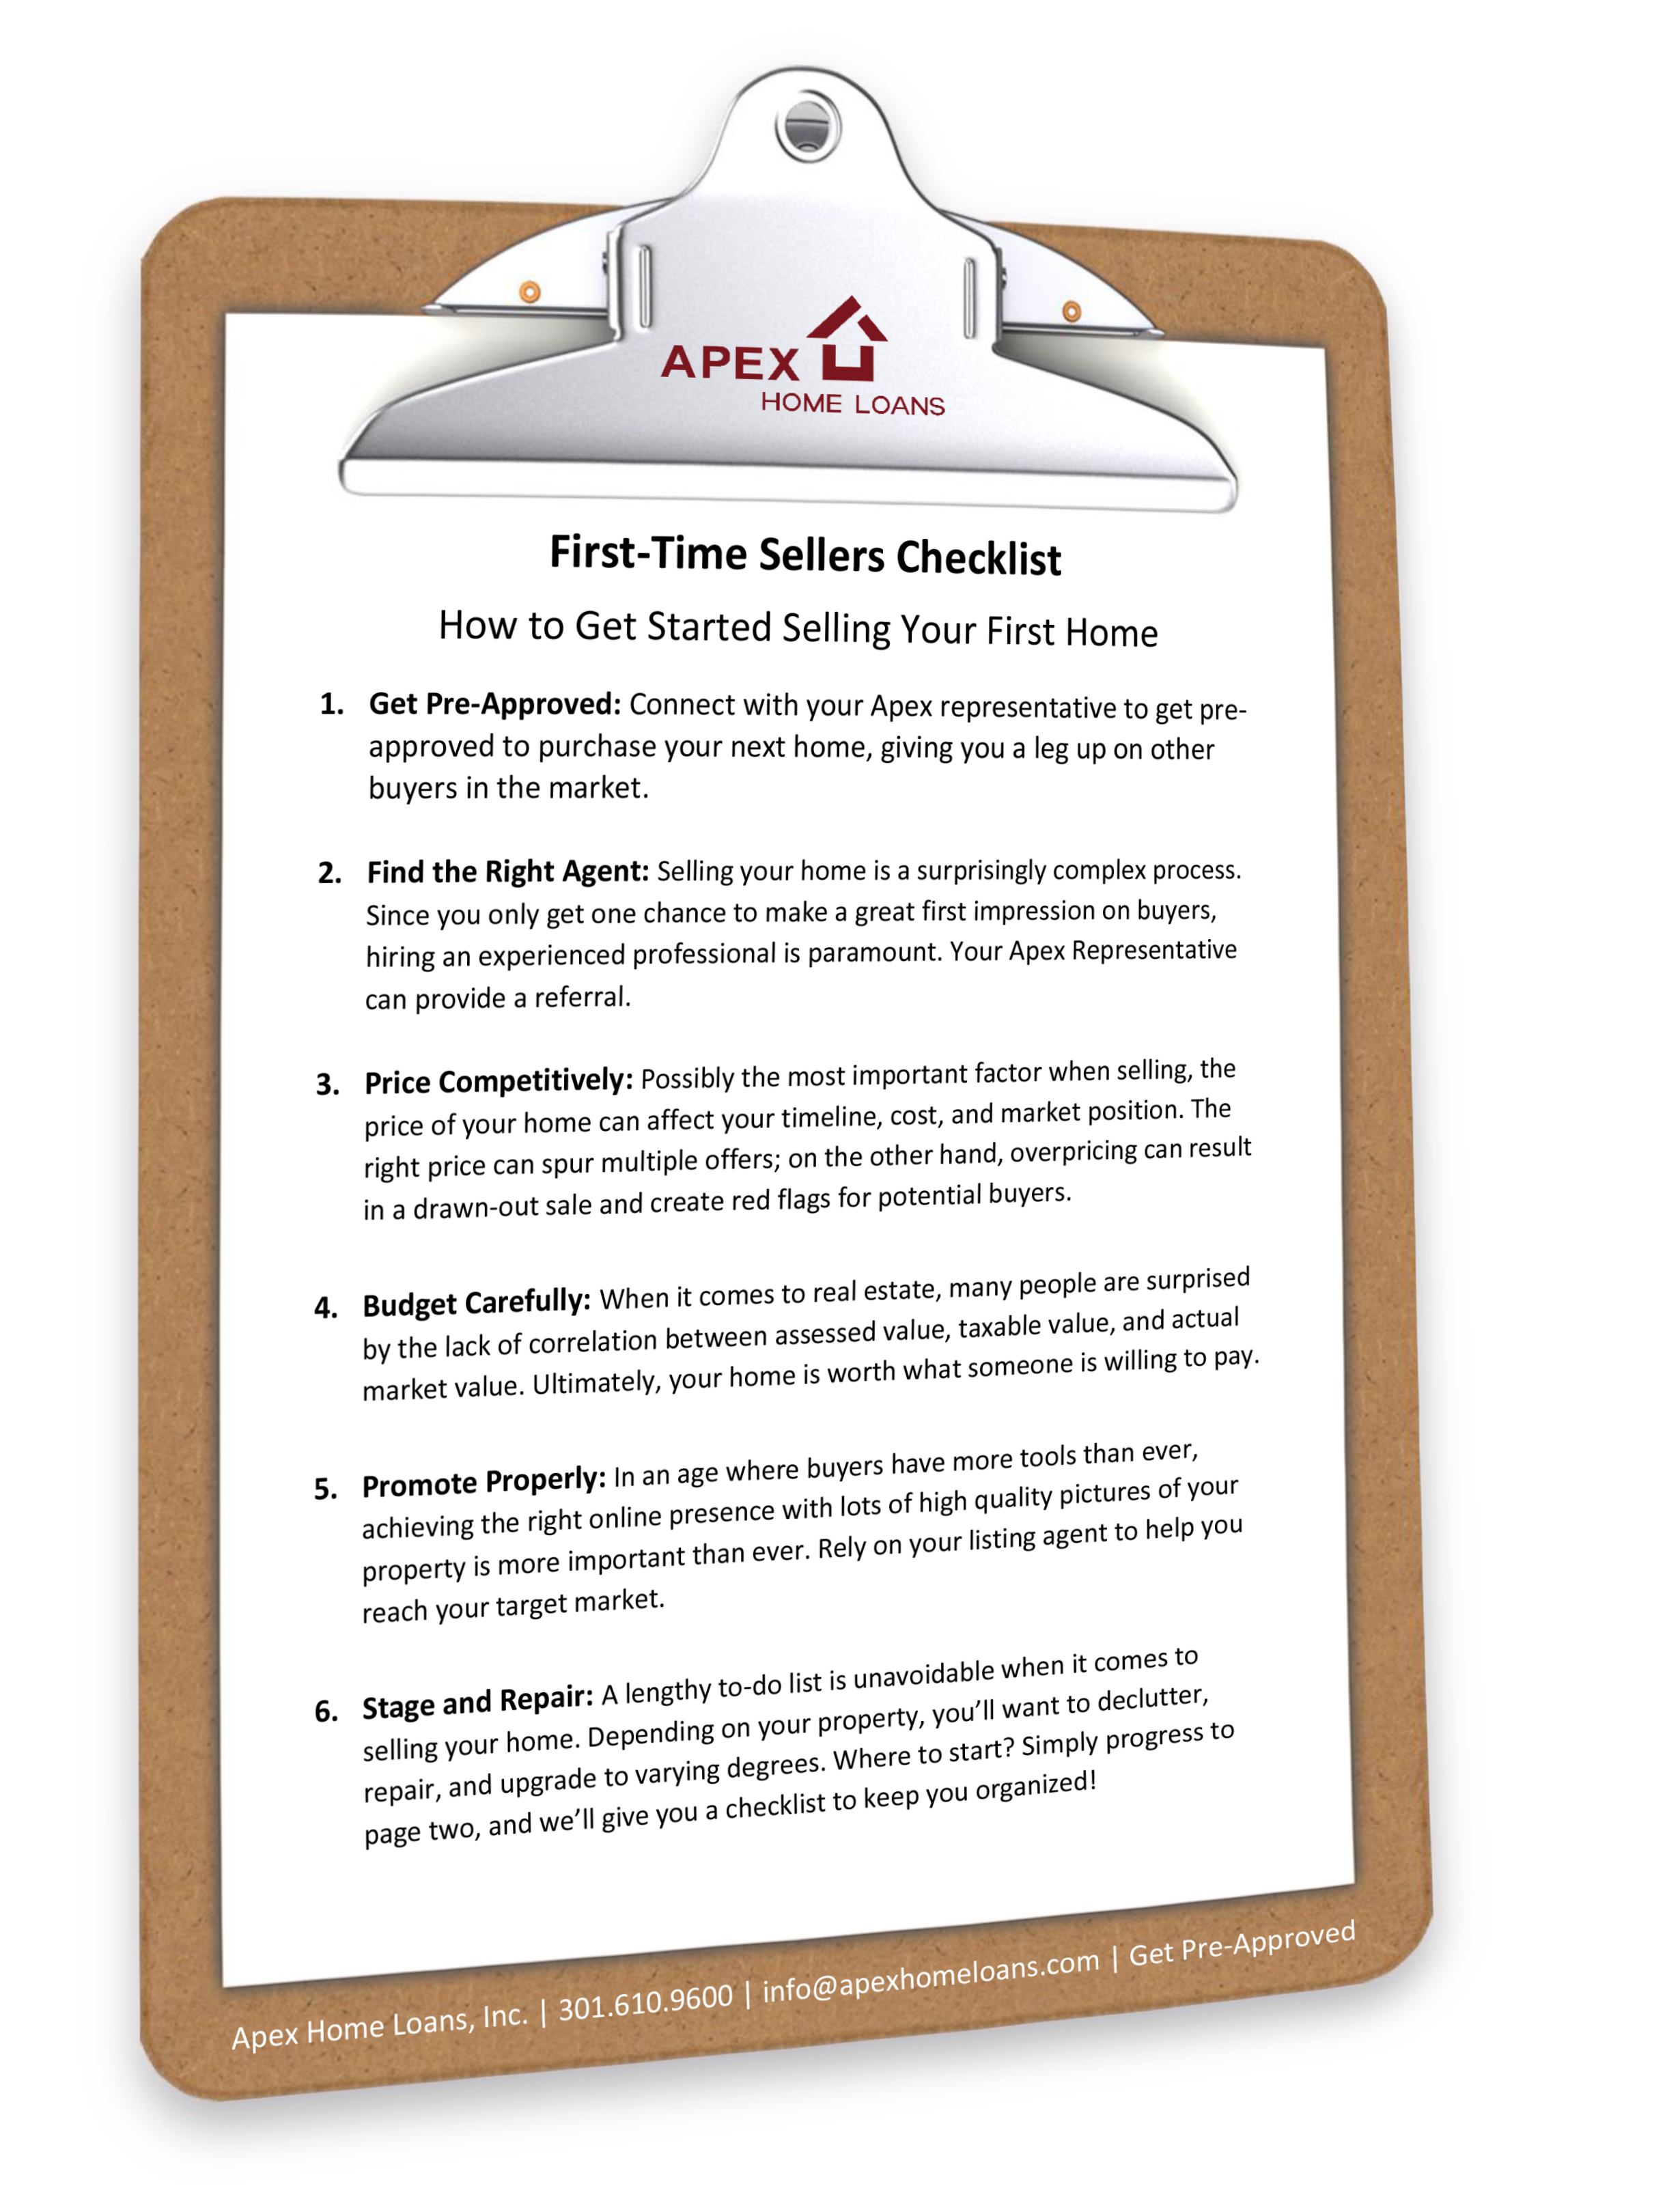 First-Time Seller Checklist